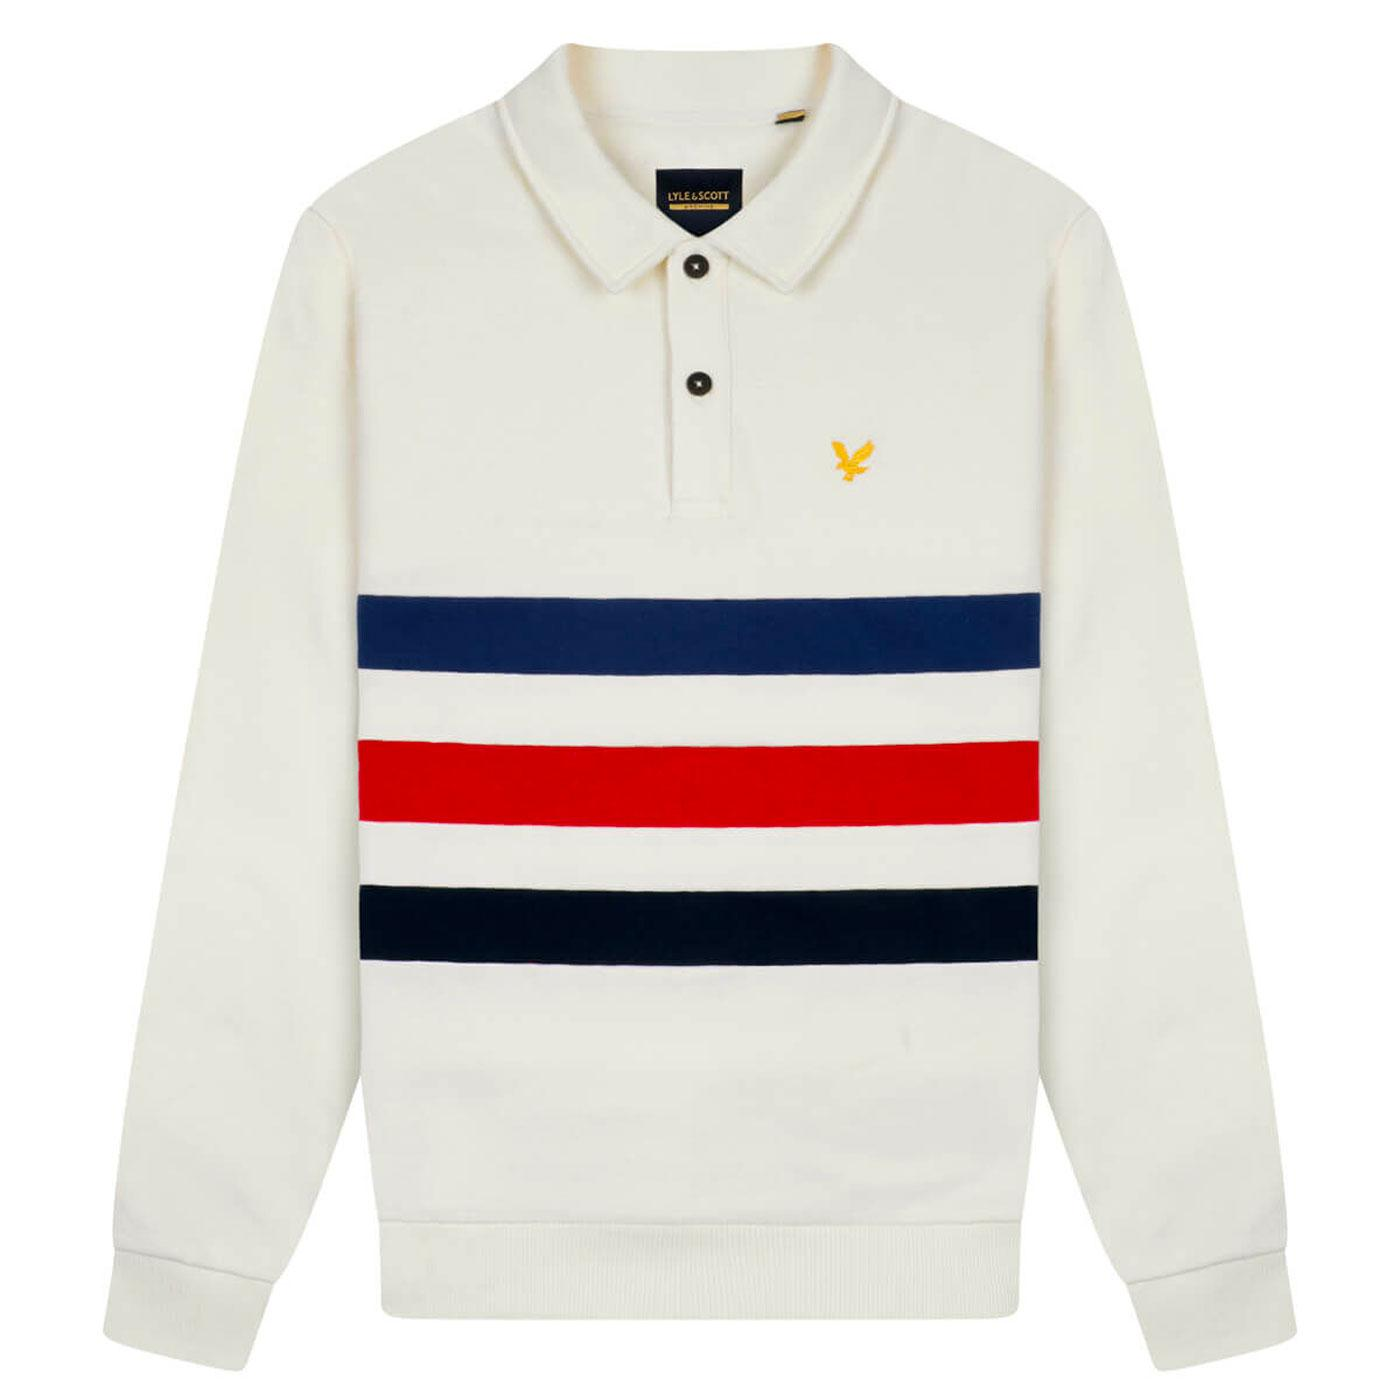 LYLE & SCOTT Retro 90s Cut & Sew Long Sleeve Polo